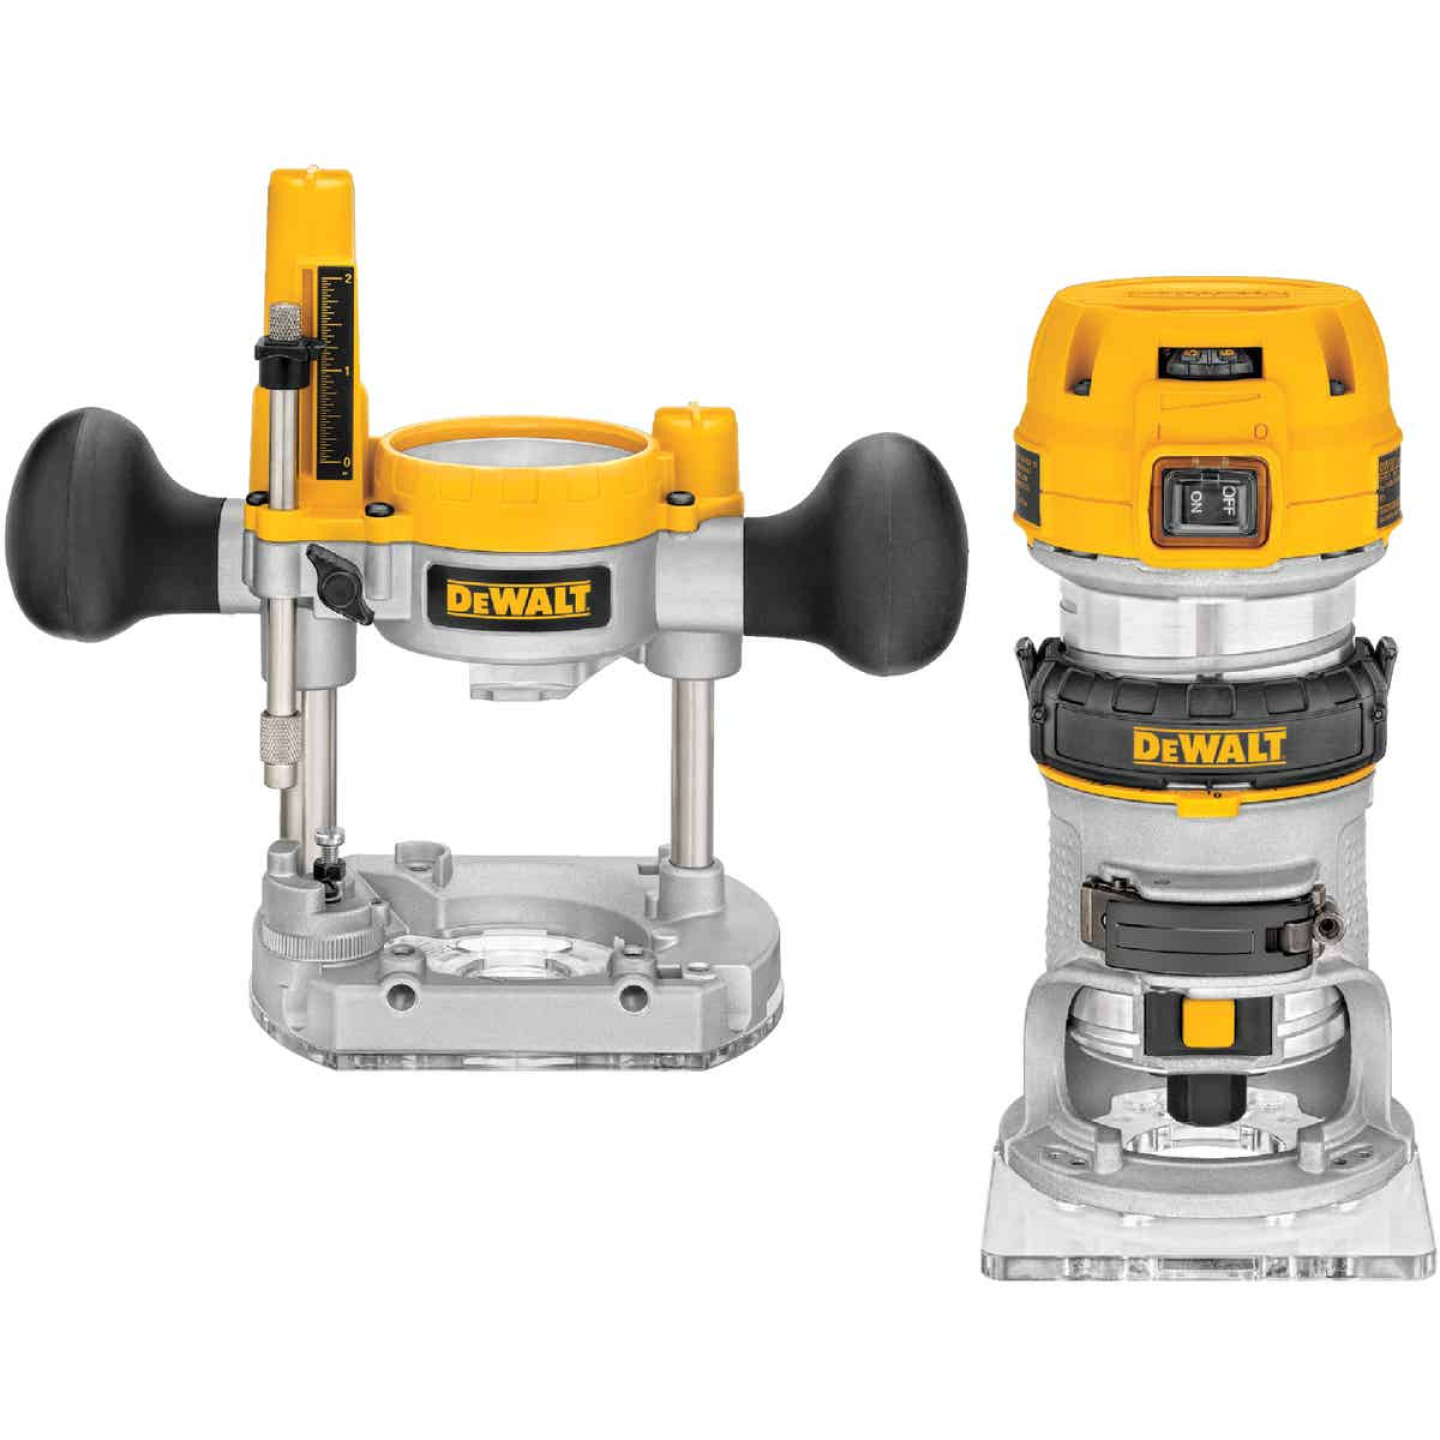 DeWalt 7.0A 16,000 to 27,000 rpm Router Kit Image 1